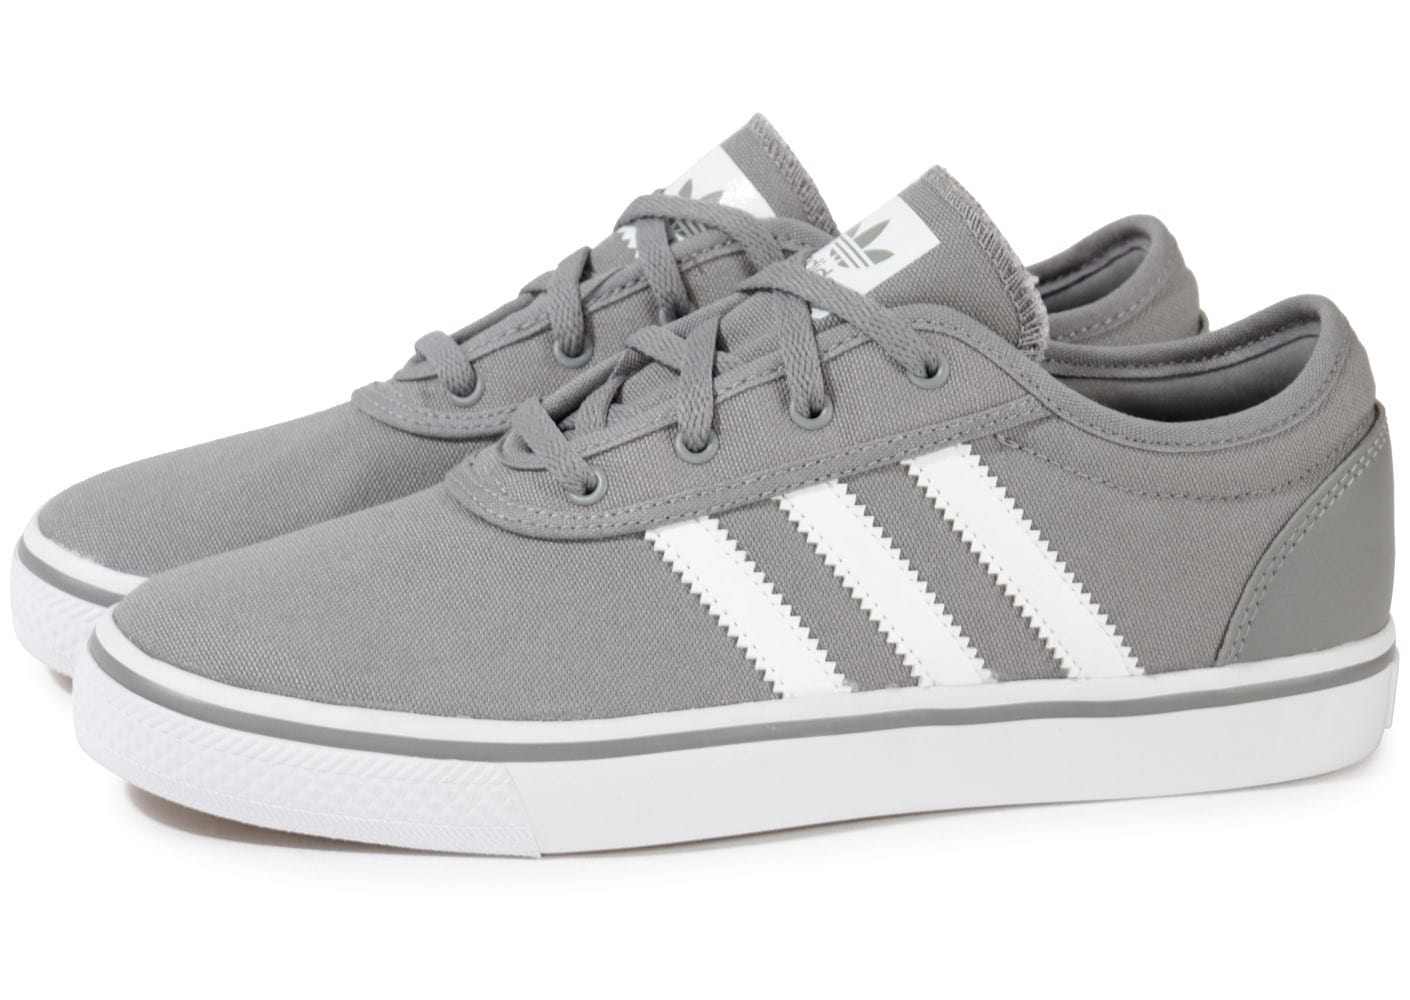 adidas chaussure femme toile